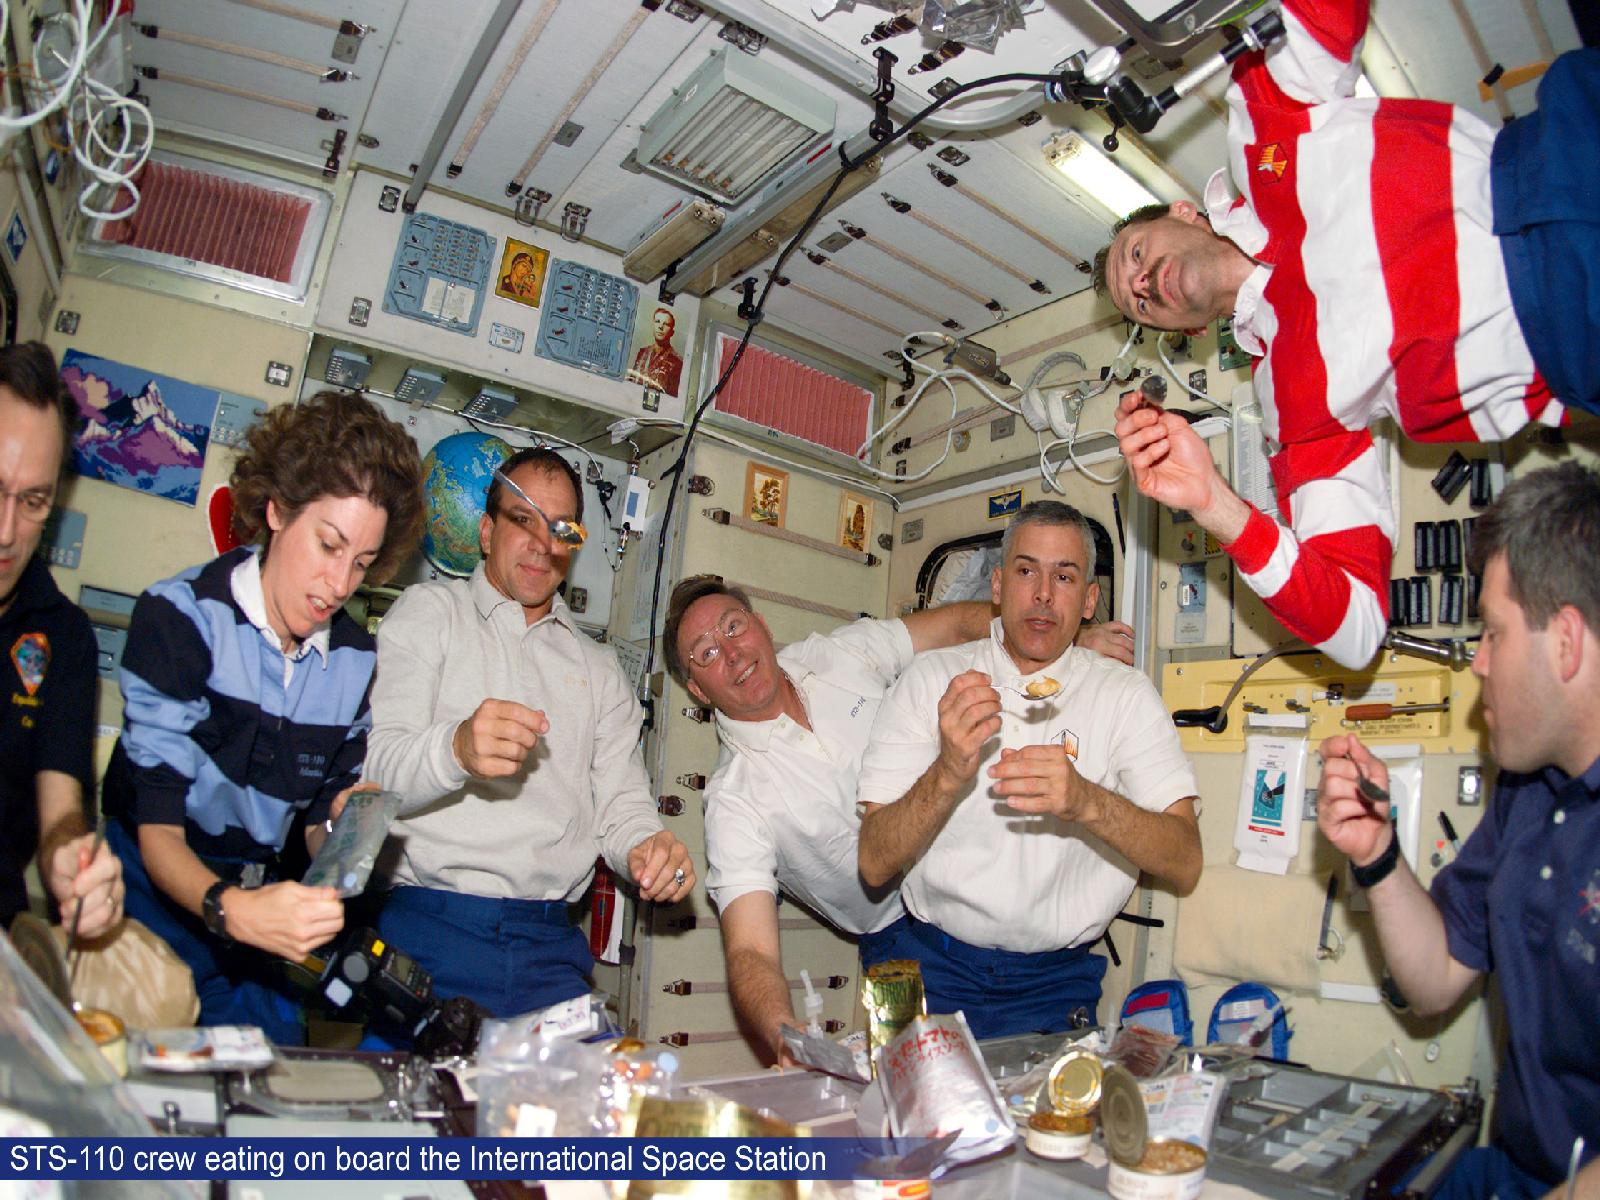 STS-110 Crew Eating on Board ISS